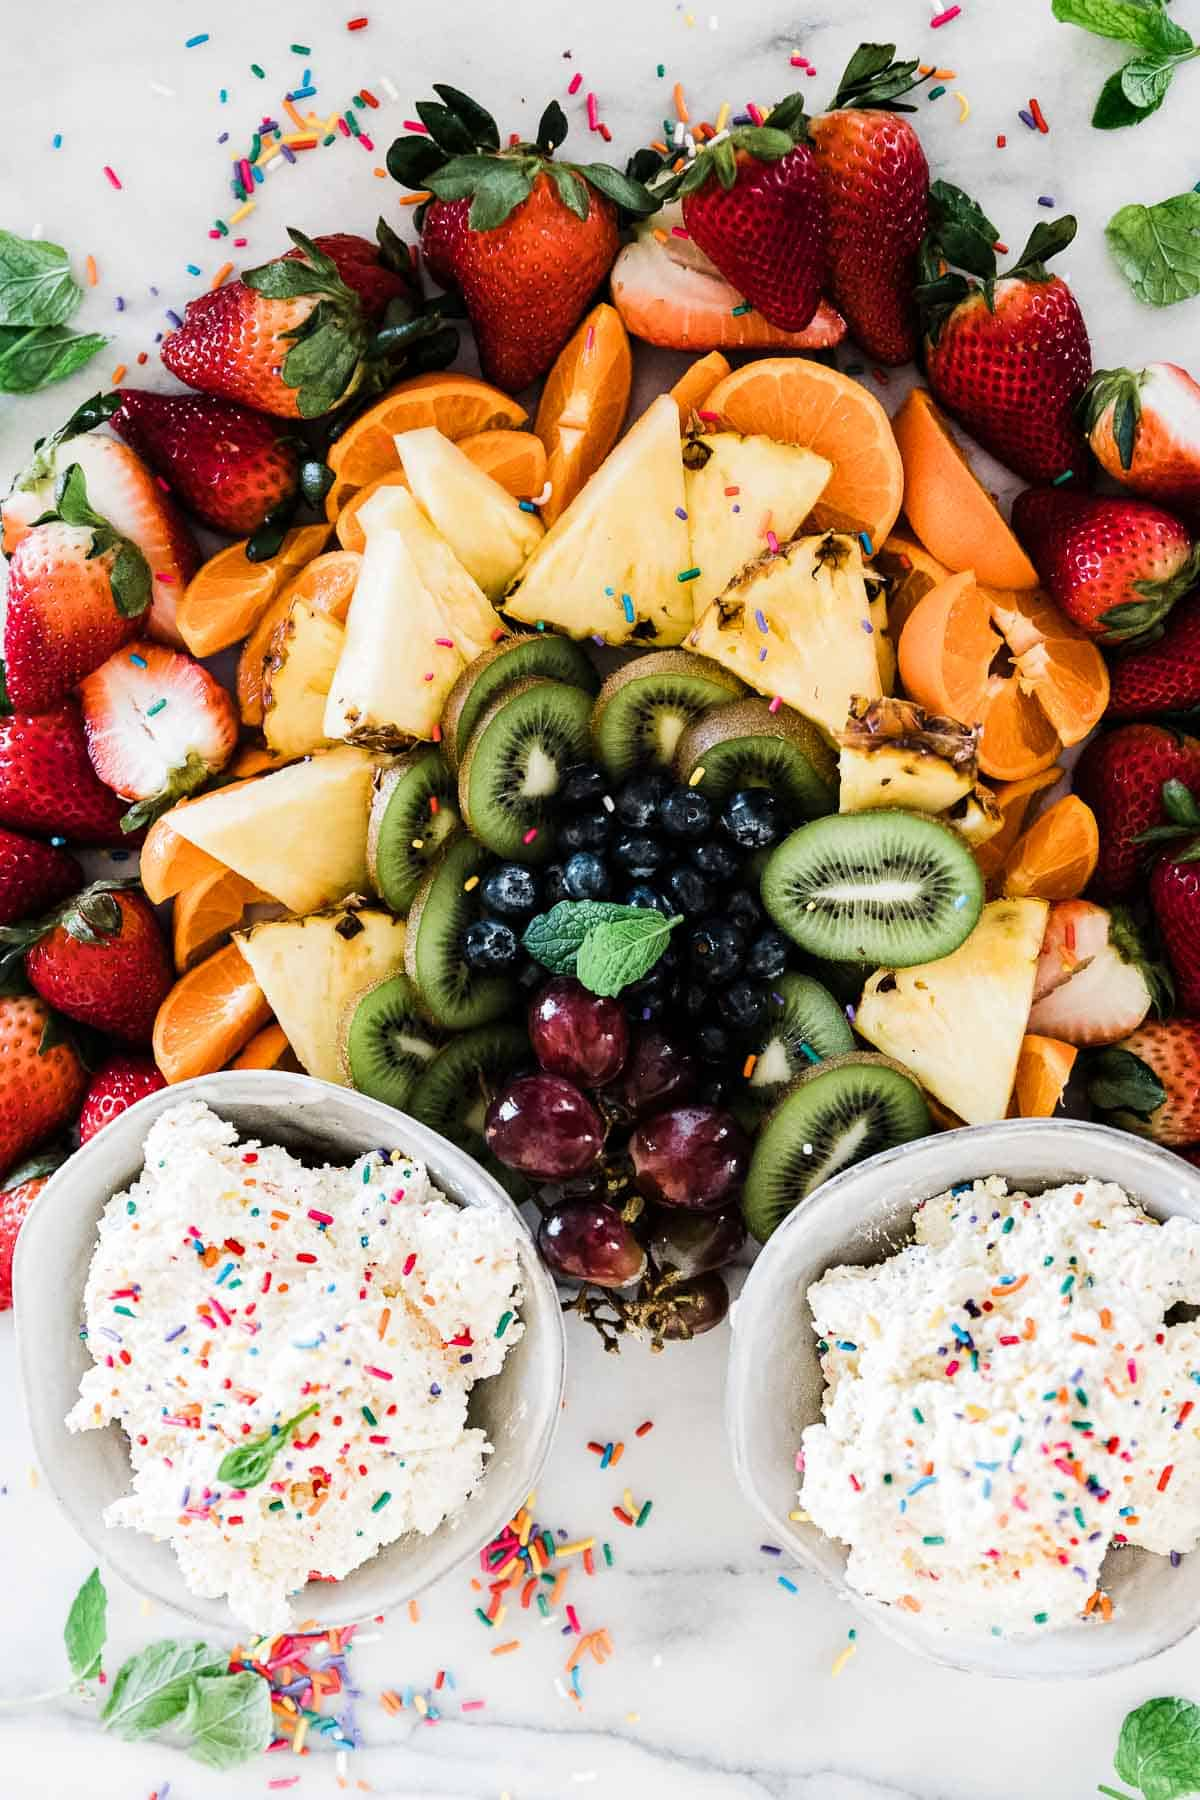 Funfetti cake batter dip on a tray of crackers and fruit.